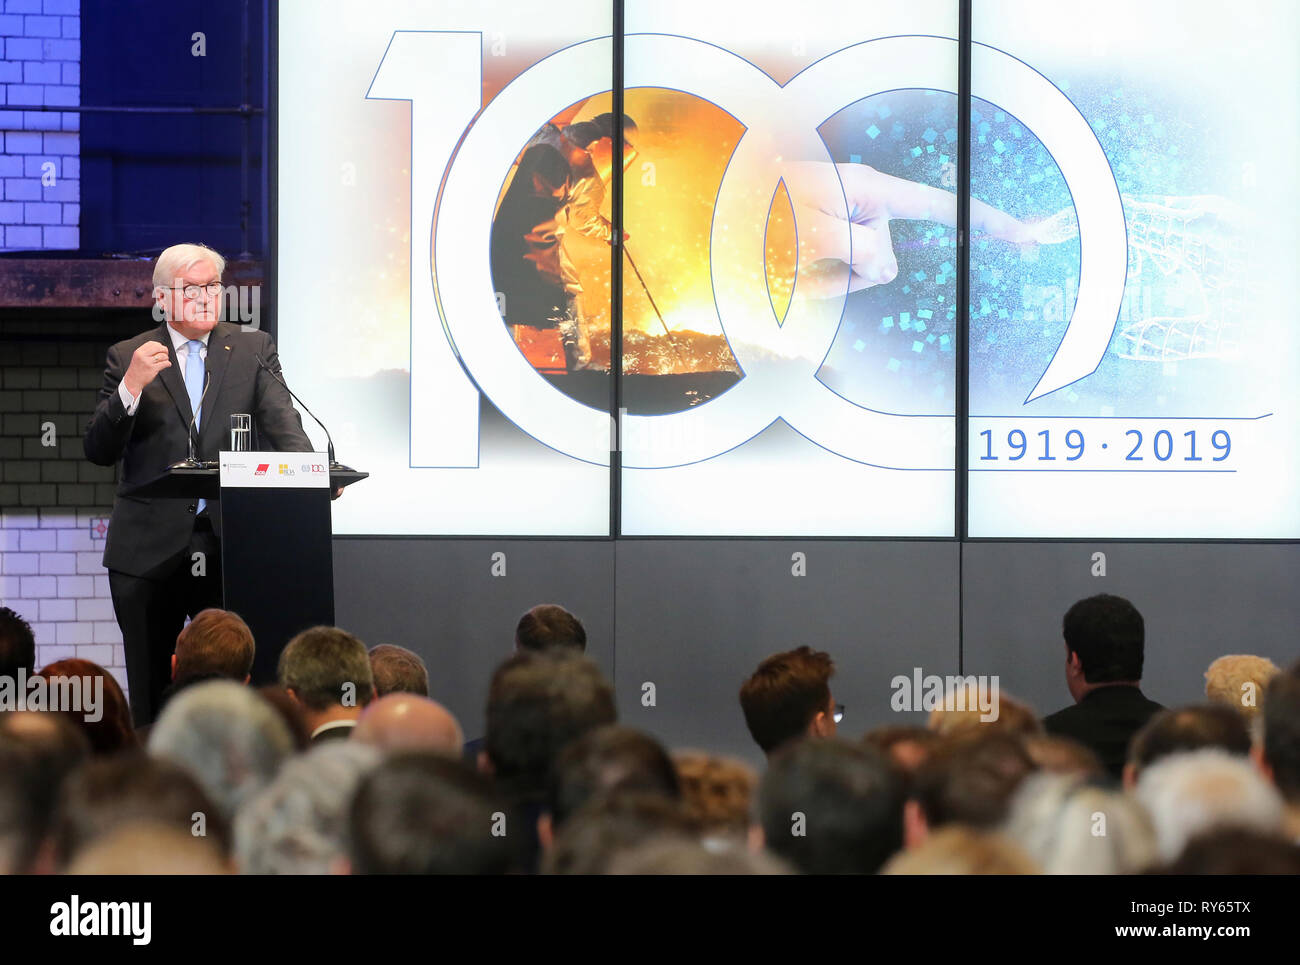 Berlin, Germany. 12th Mar, 2019. Federal President Frank-Walter Steinmeier addresses the 100th anniversary of the International Labour Organization (ILO). He called for consistent taxation of international digital corporations. Credit: Wolfgang Kumm/dpa/Alamy Live News - Stock Image